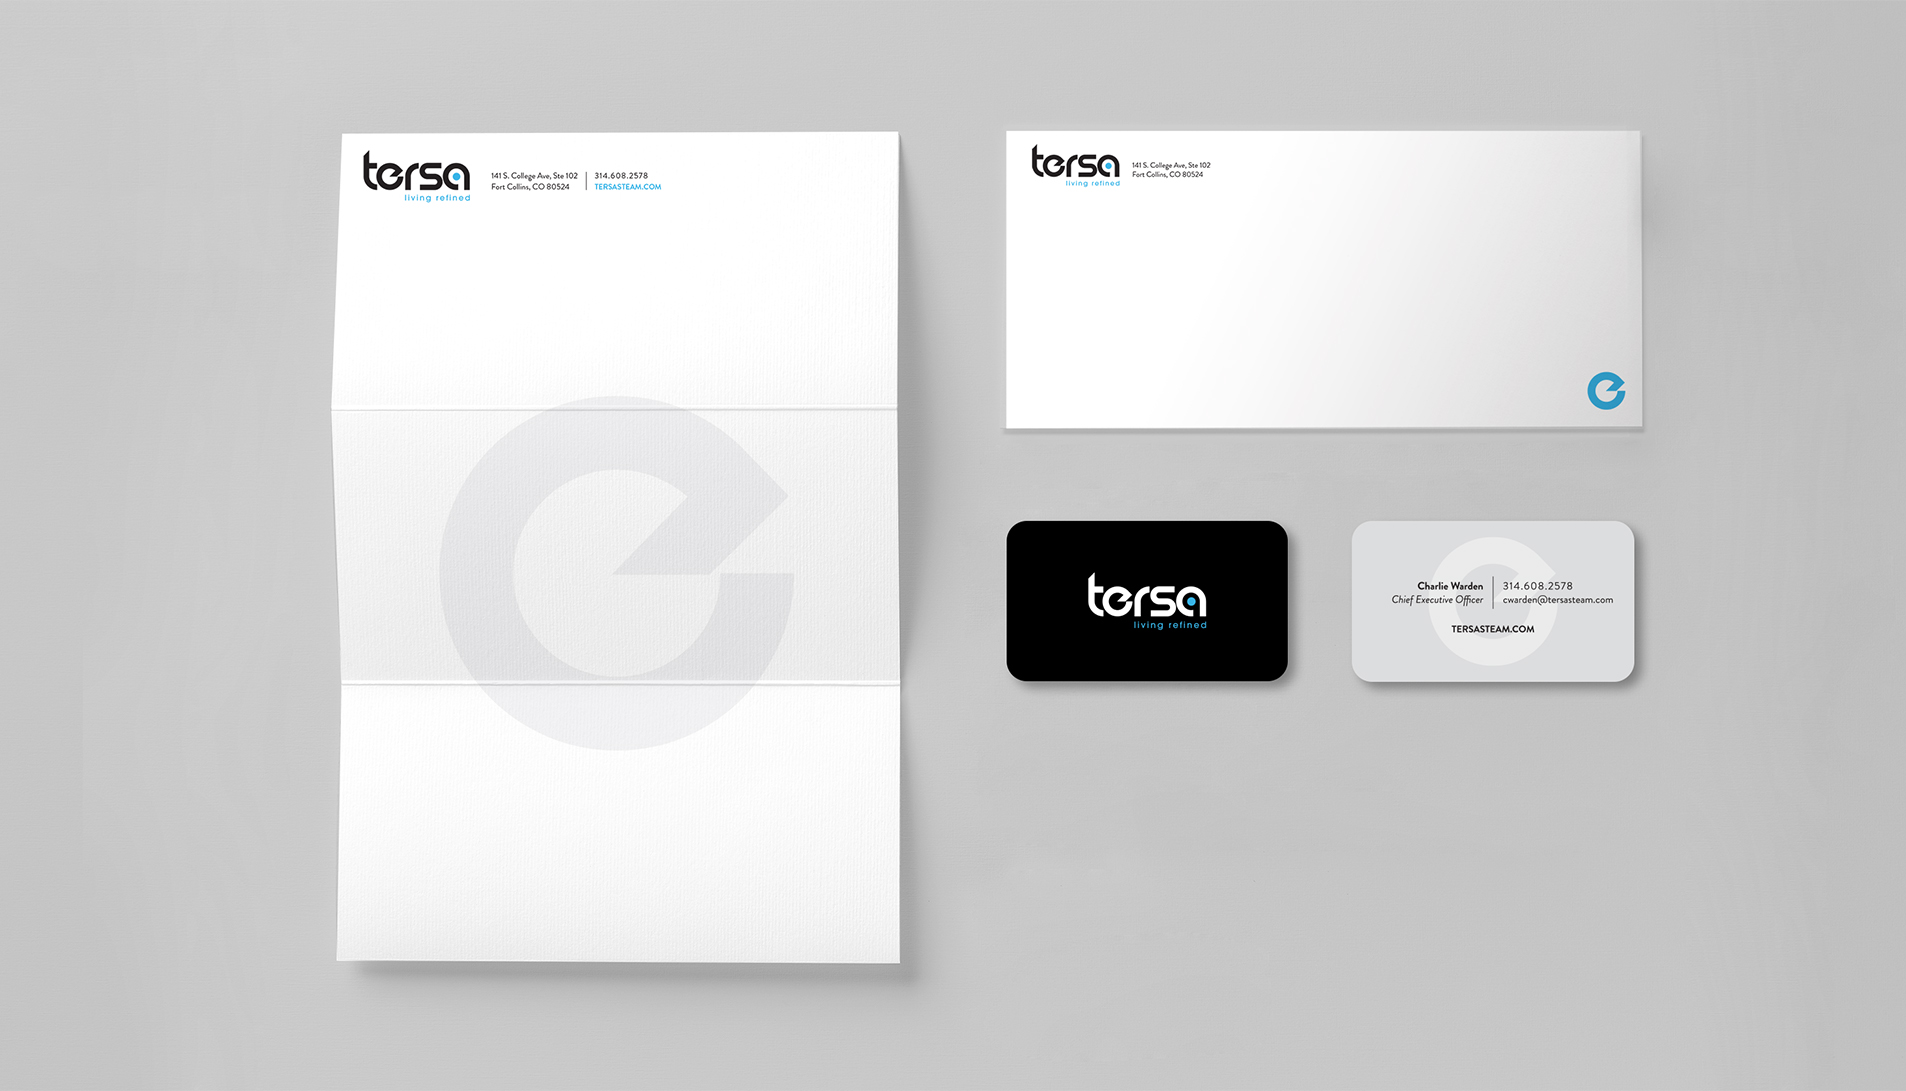 tersa stationery print design